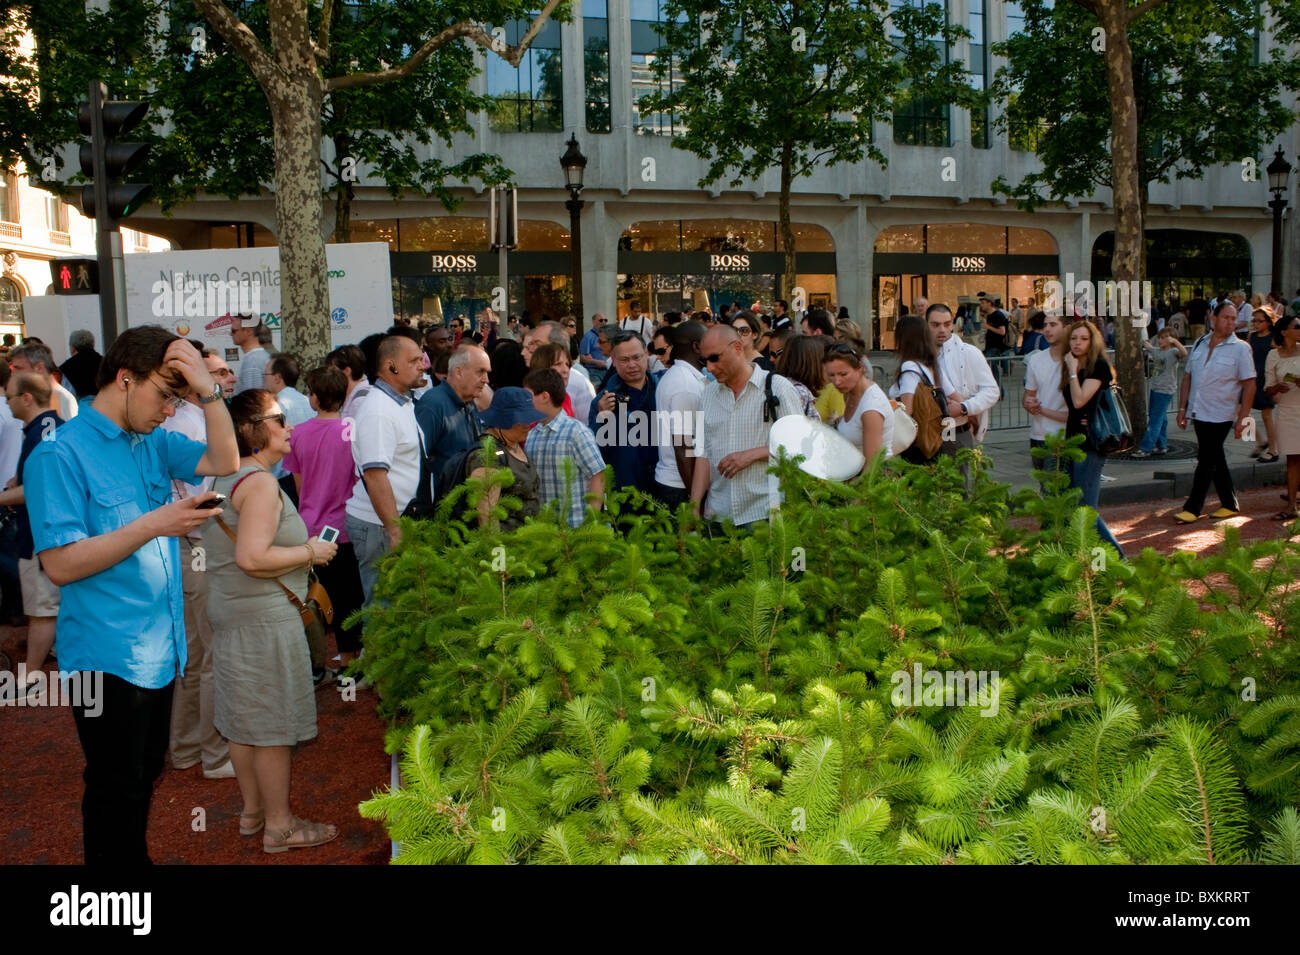 Crowd of Tourists, Visiting Paris, France, Garden Festival, Champs-Ely-sees Farmer's Event, Promenading on Street - Stock Image